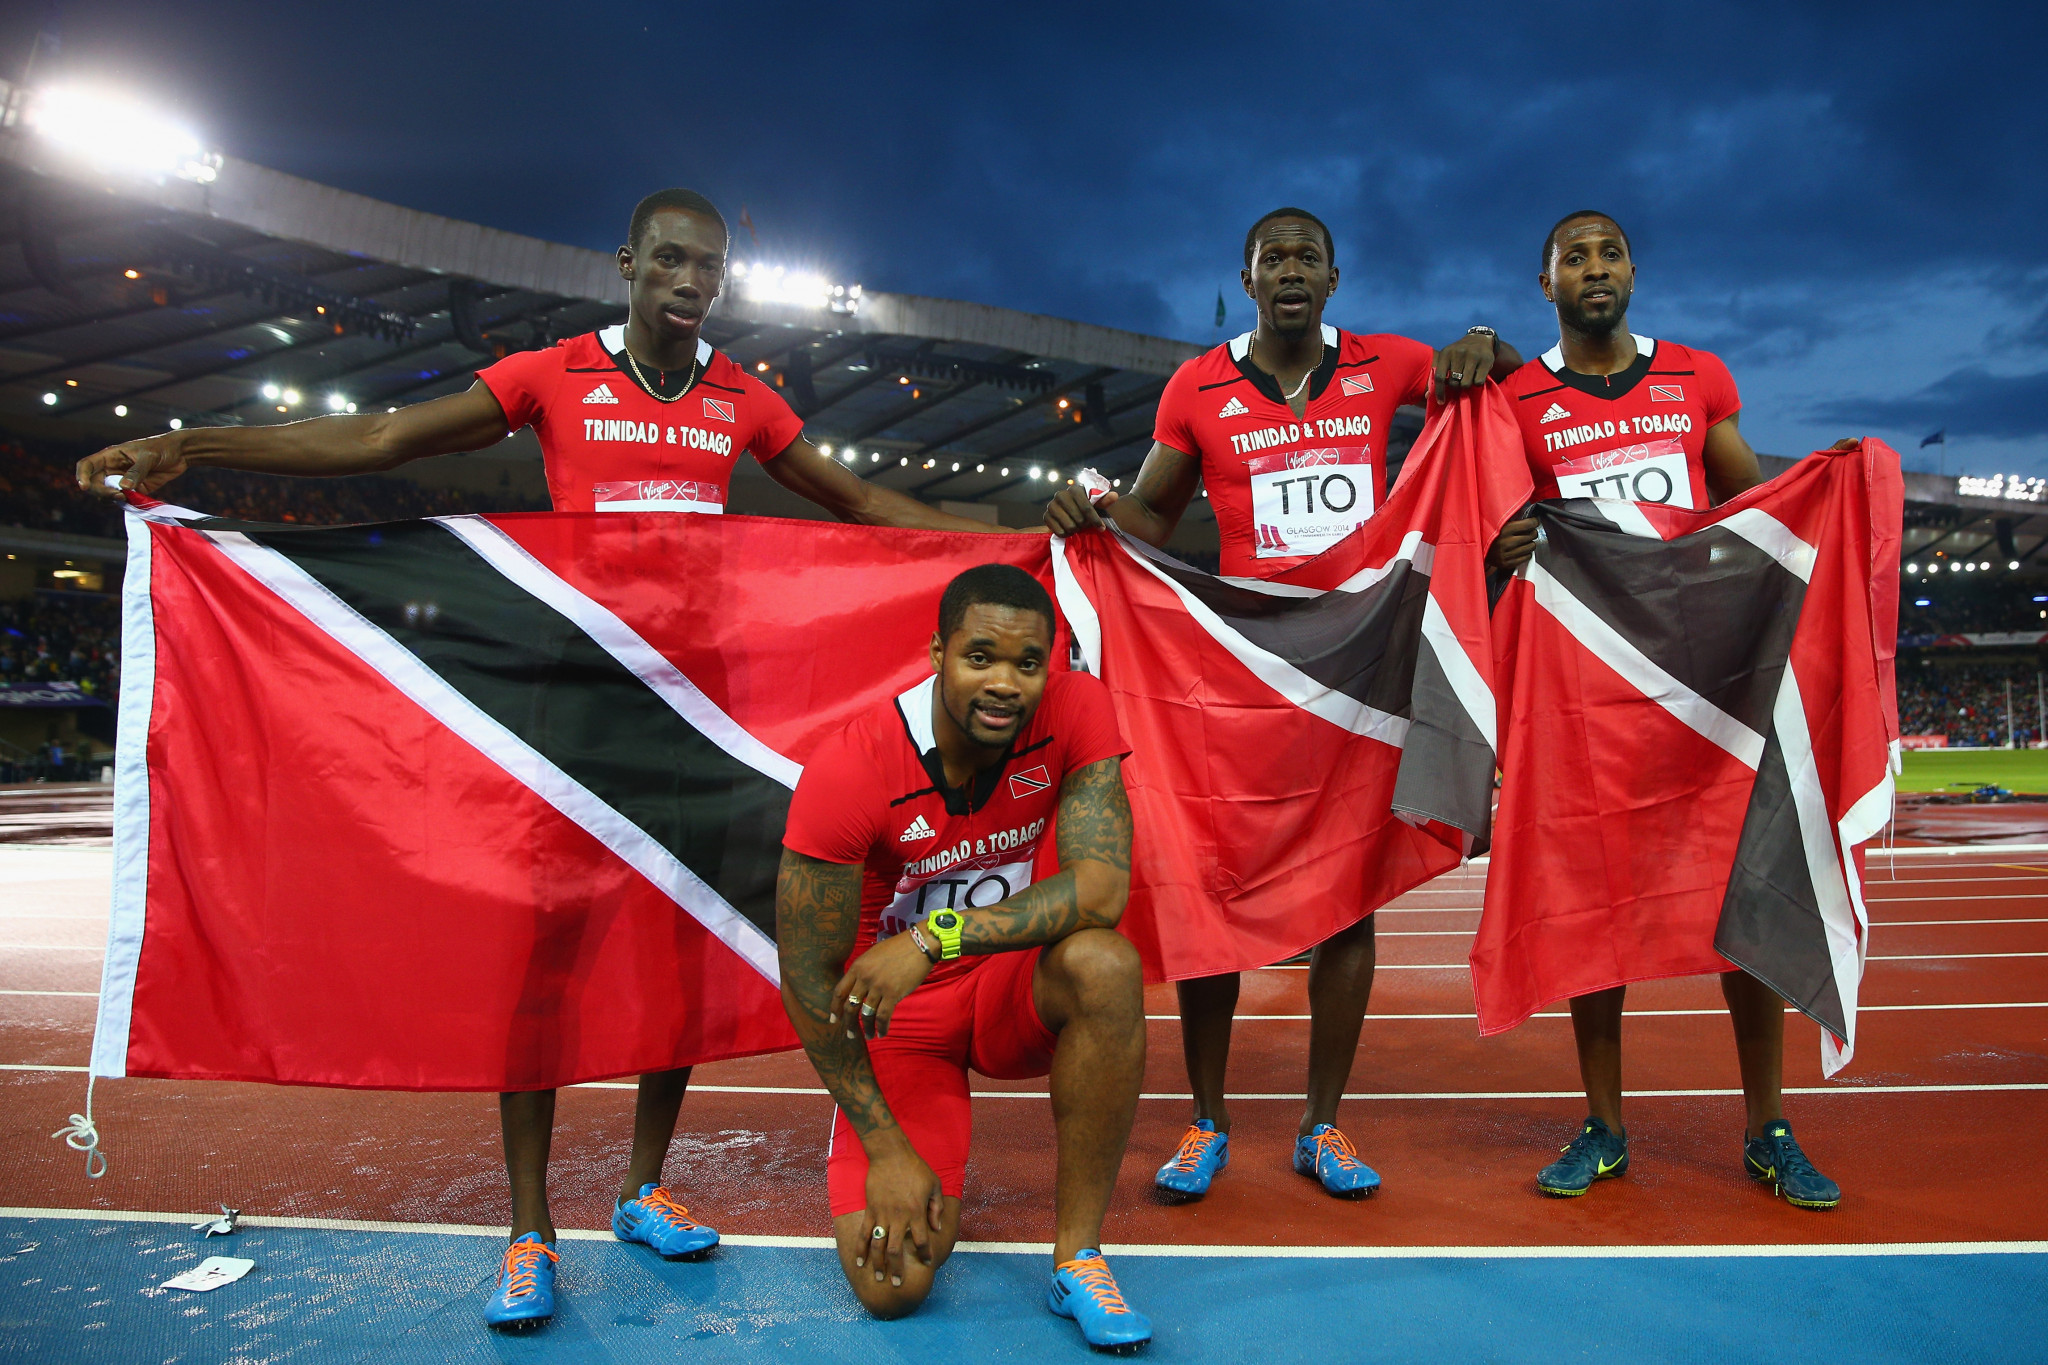 Trinidad and Tobago will aim to improve on their Glasgow 2014 Commonwealth Games haul in Gold Coast ©Getty Images